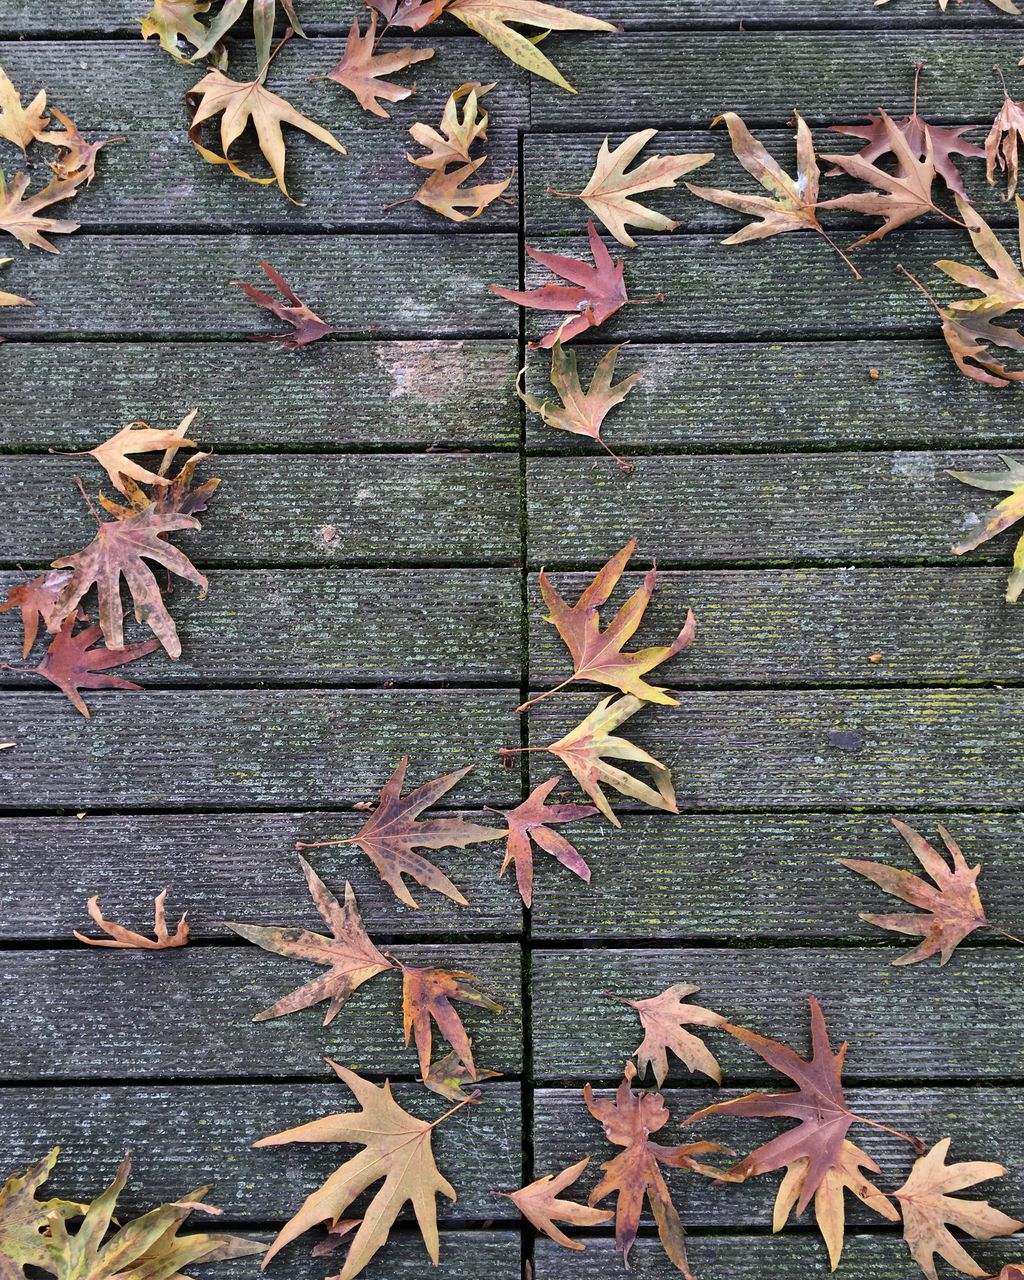 High Angle View Of Autumn Leaves On Boardwalk